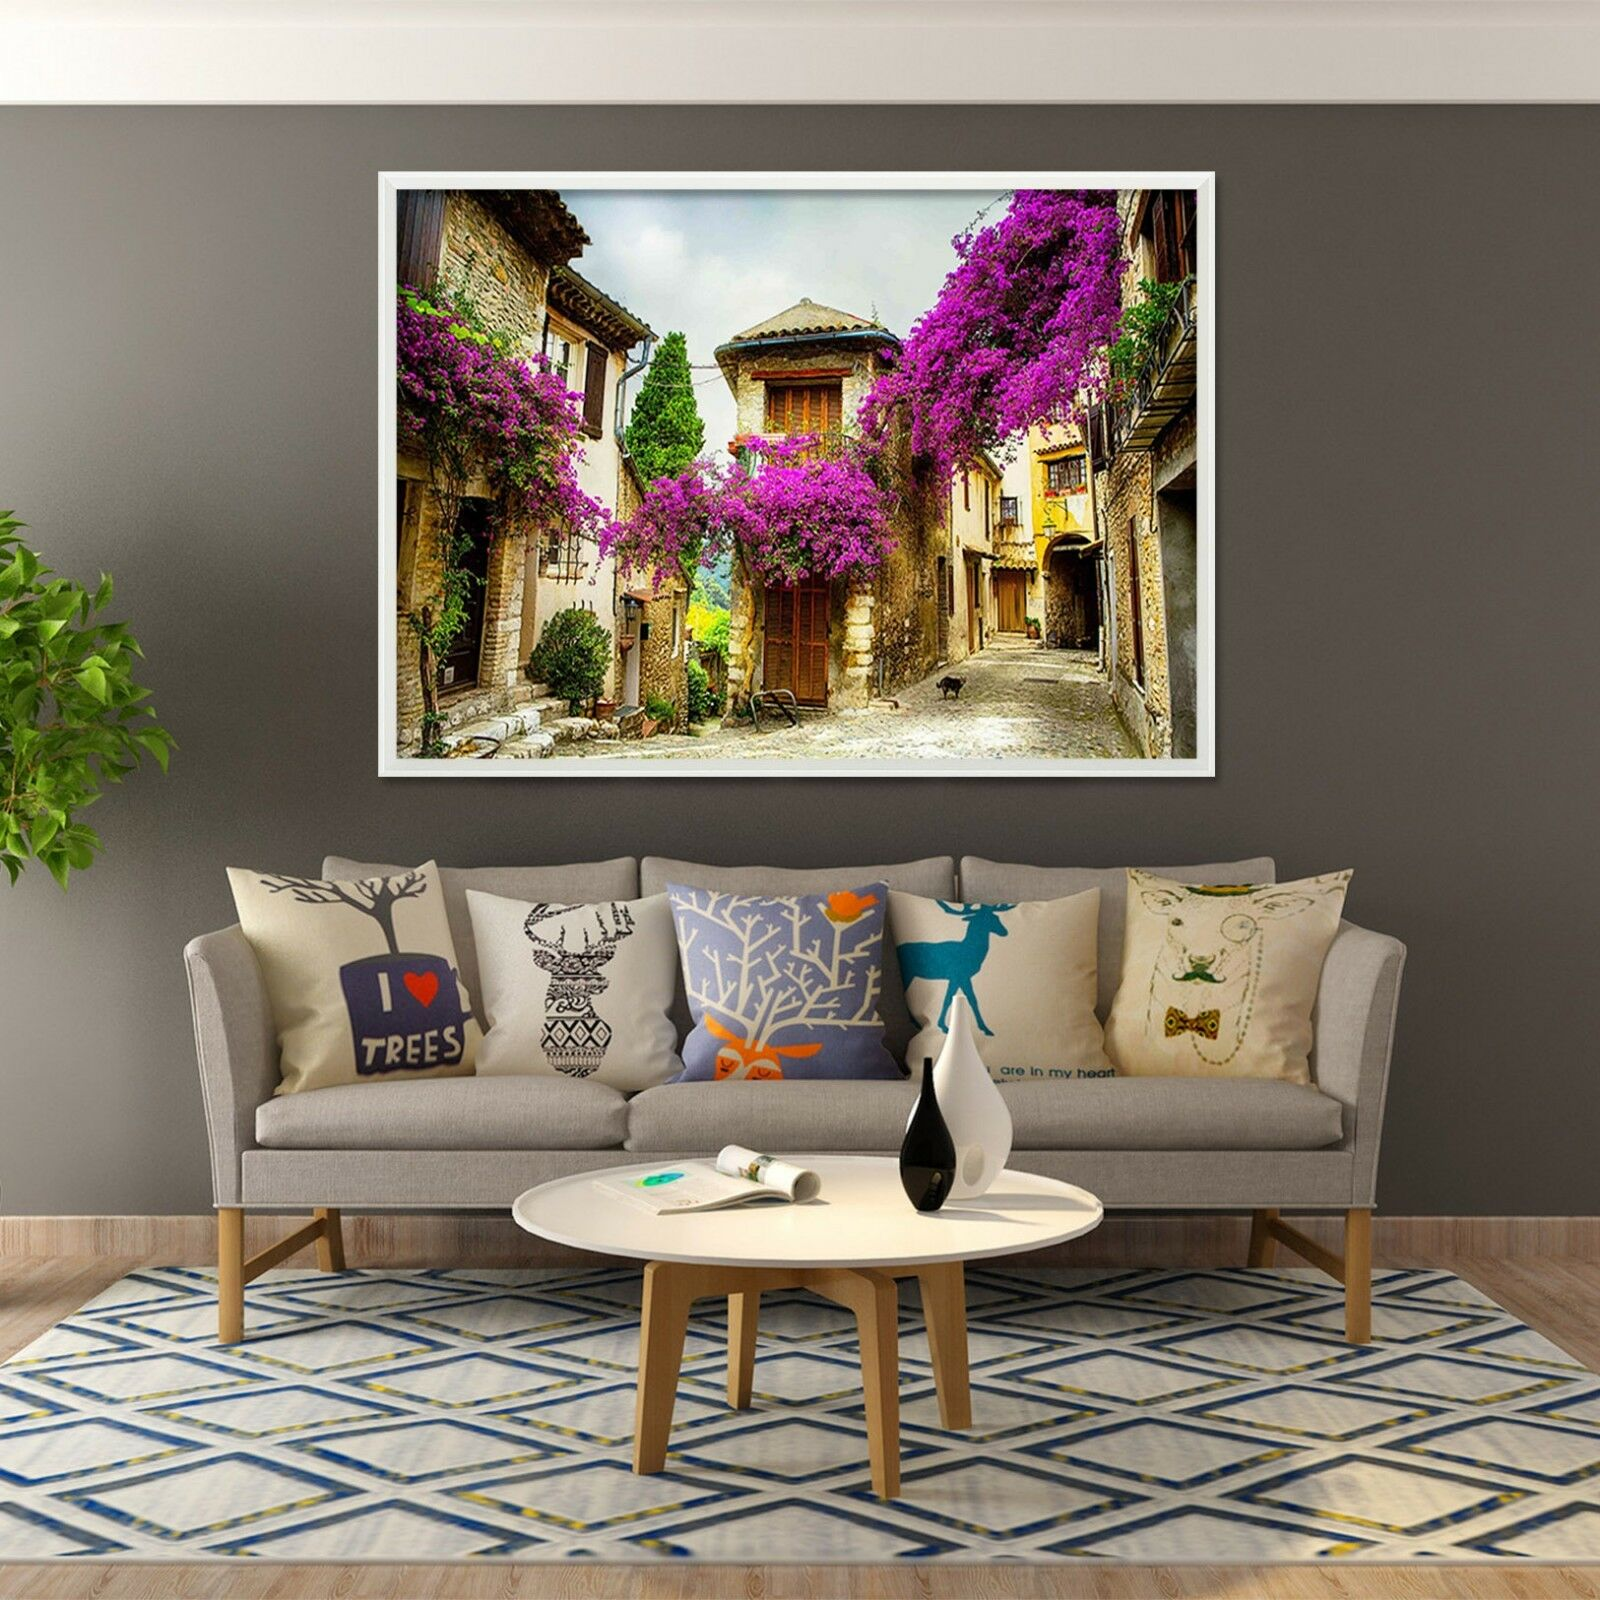 3D Front Door Flower 4 Framed Poster Home Decor Print Painting Art AJ WALLPAPER